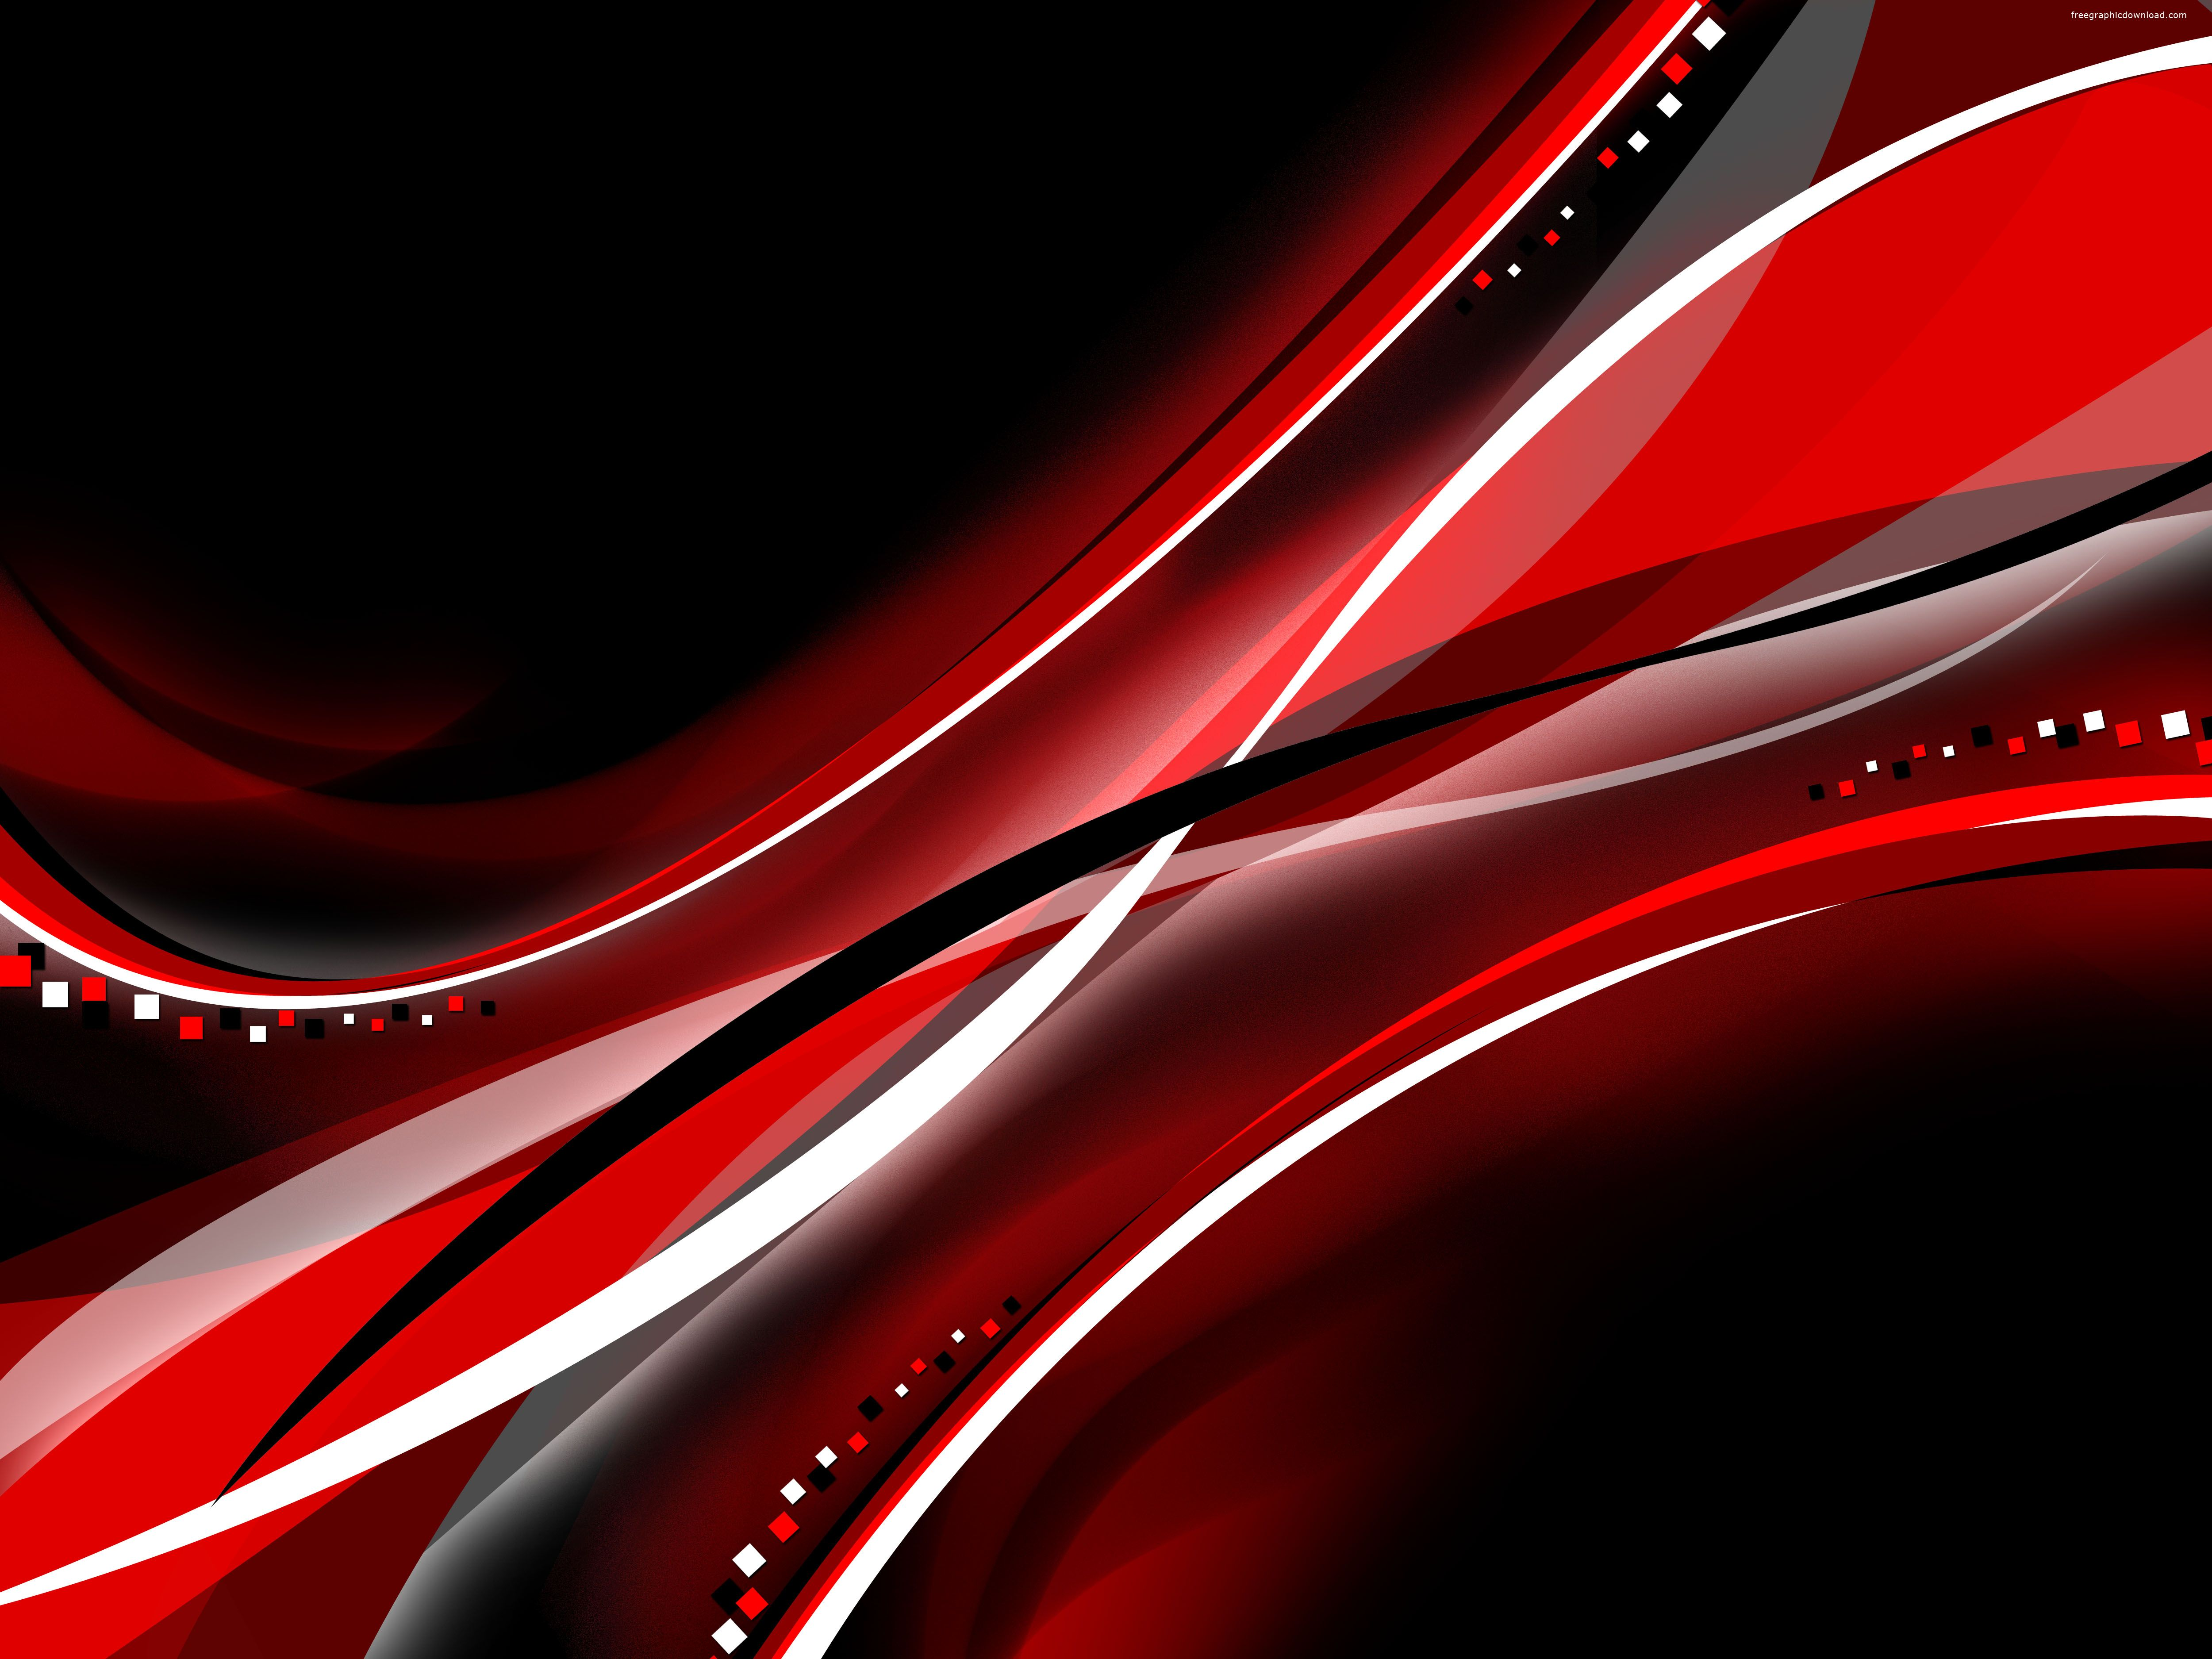 Red And Black Abstract Wallpapers Top Free Red And Black Abstract Backgrounds Wallpaperaccess